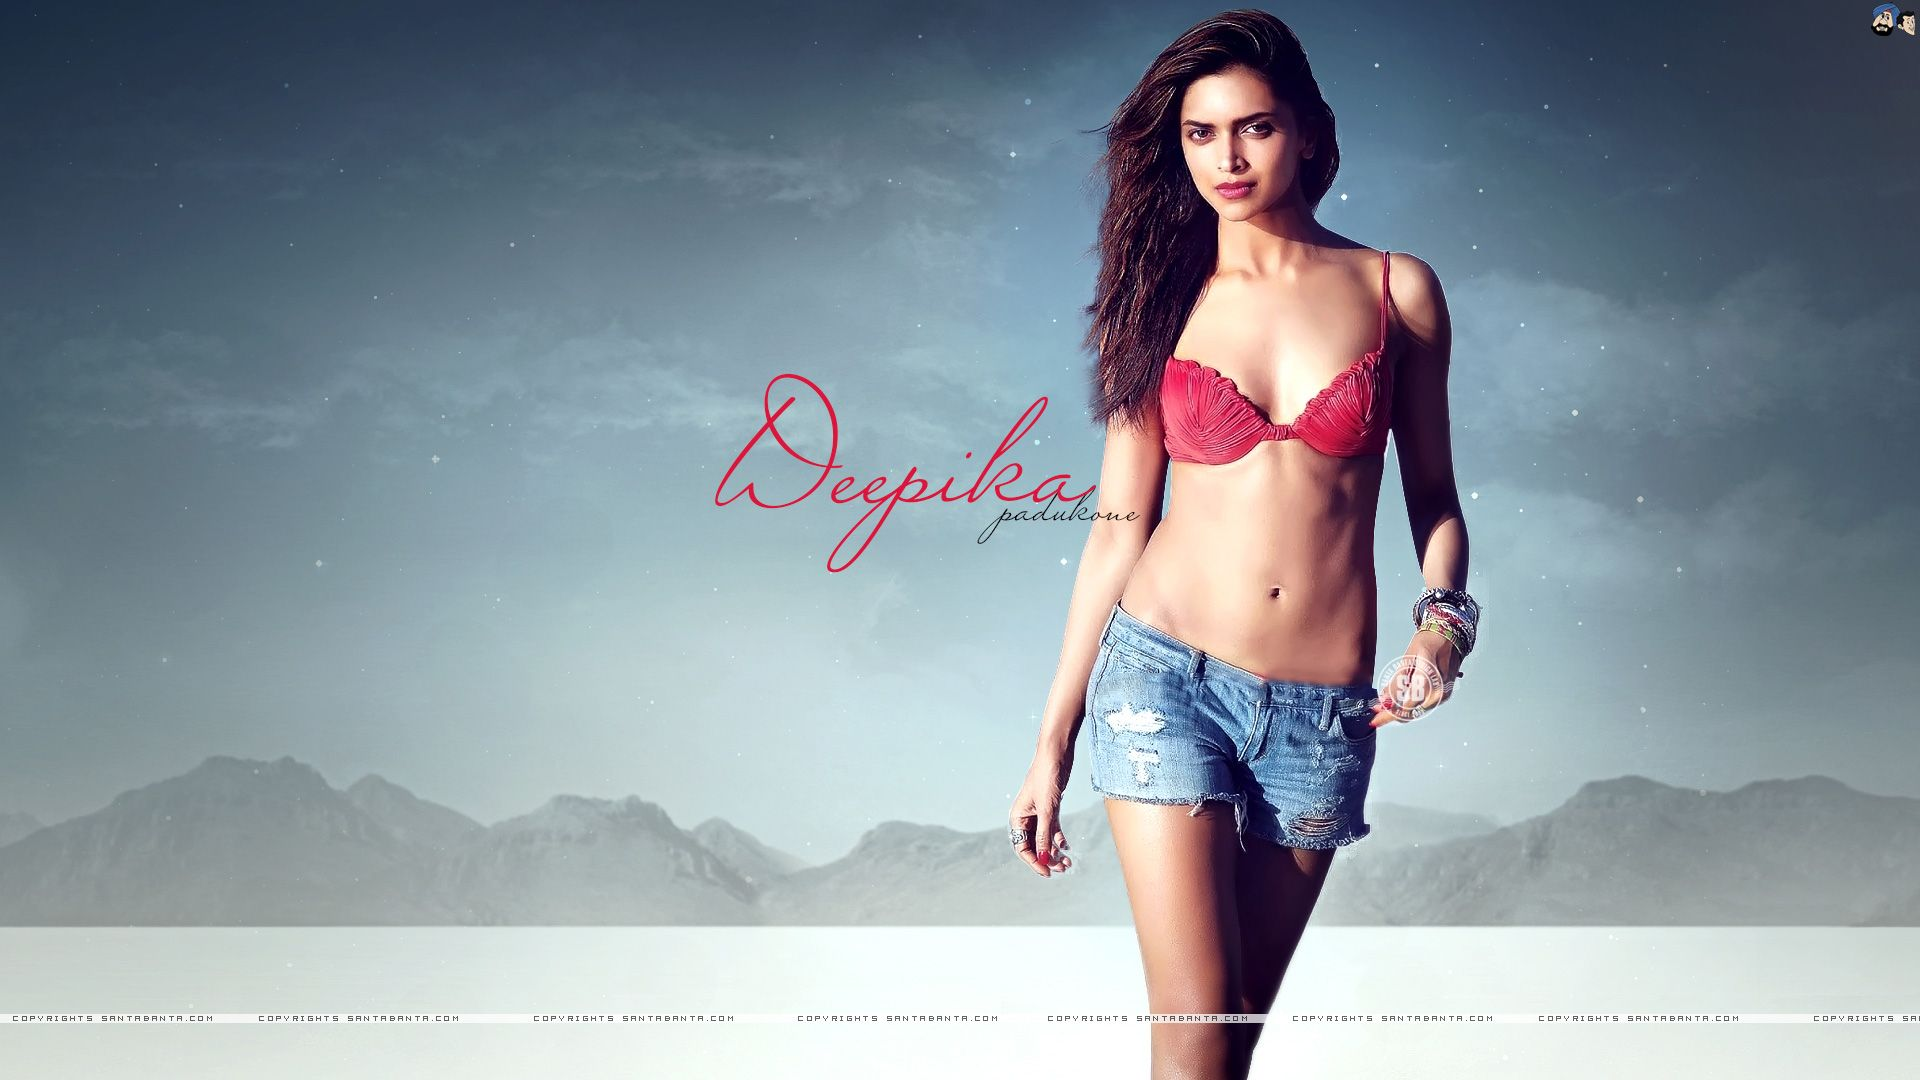 deepika padukone hot in red bikini top to see her nude pics